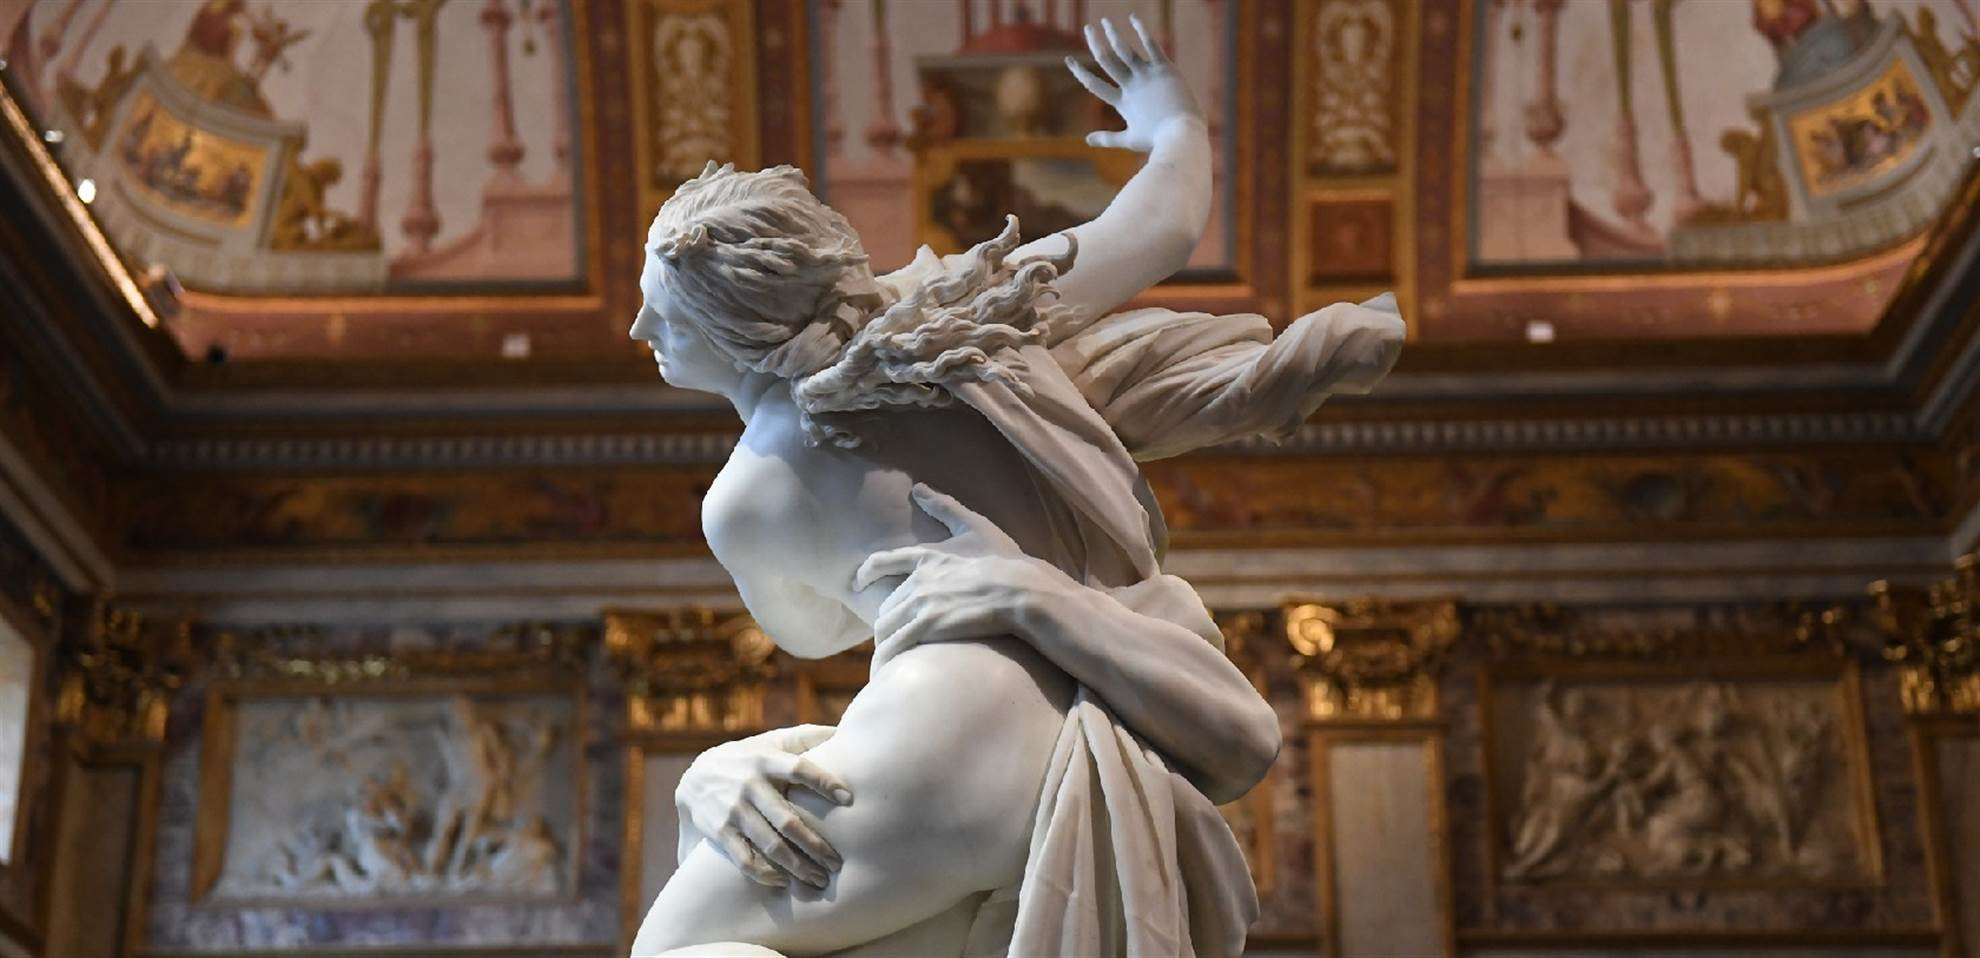 Borghese Gallery Tour with a guide